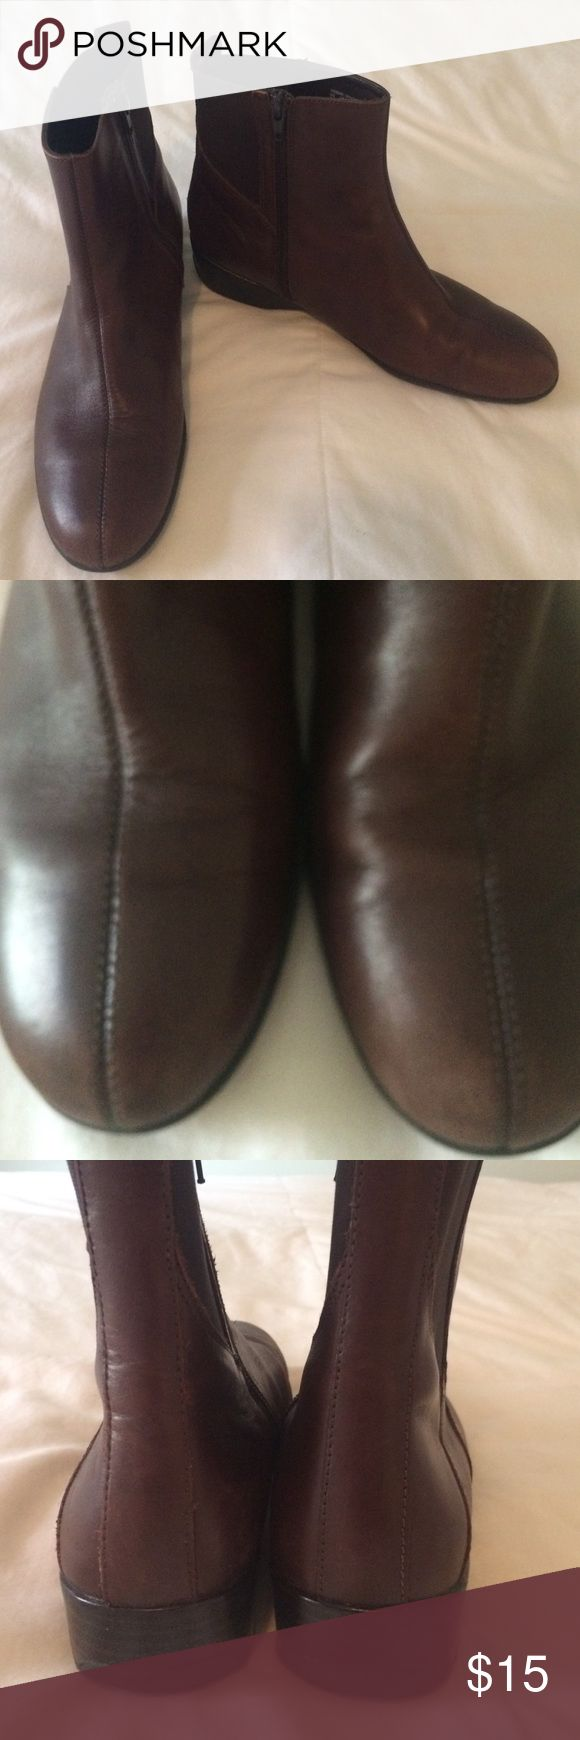 Ankle boots Hush Puppies Good condition and comfy. Coffee bean color. Hush Puppy brand Hush Puppies Shoes Ankle Boots & Booties